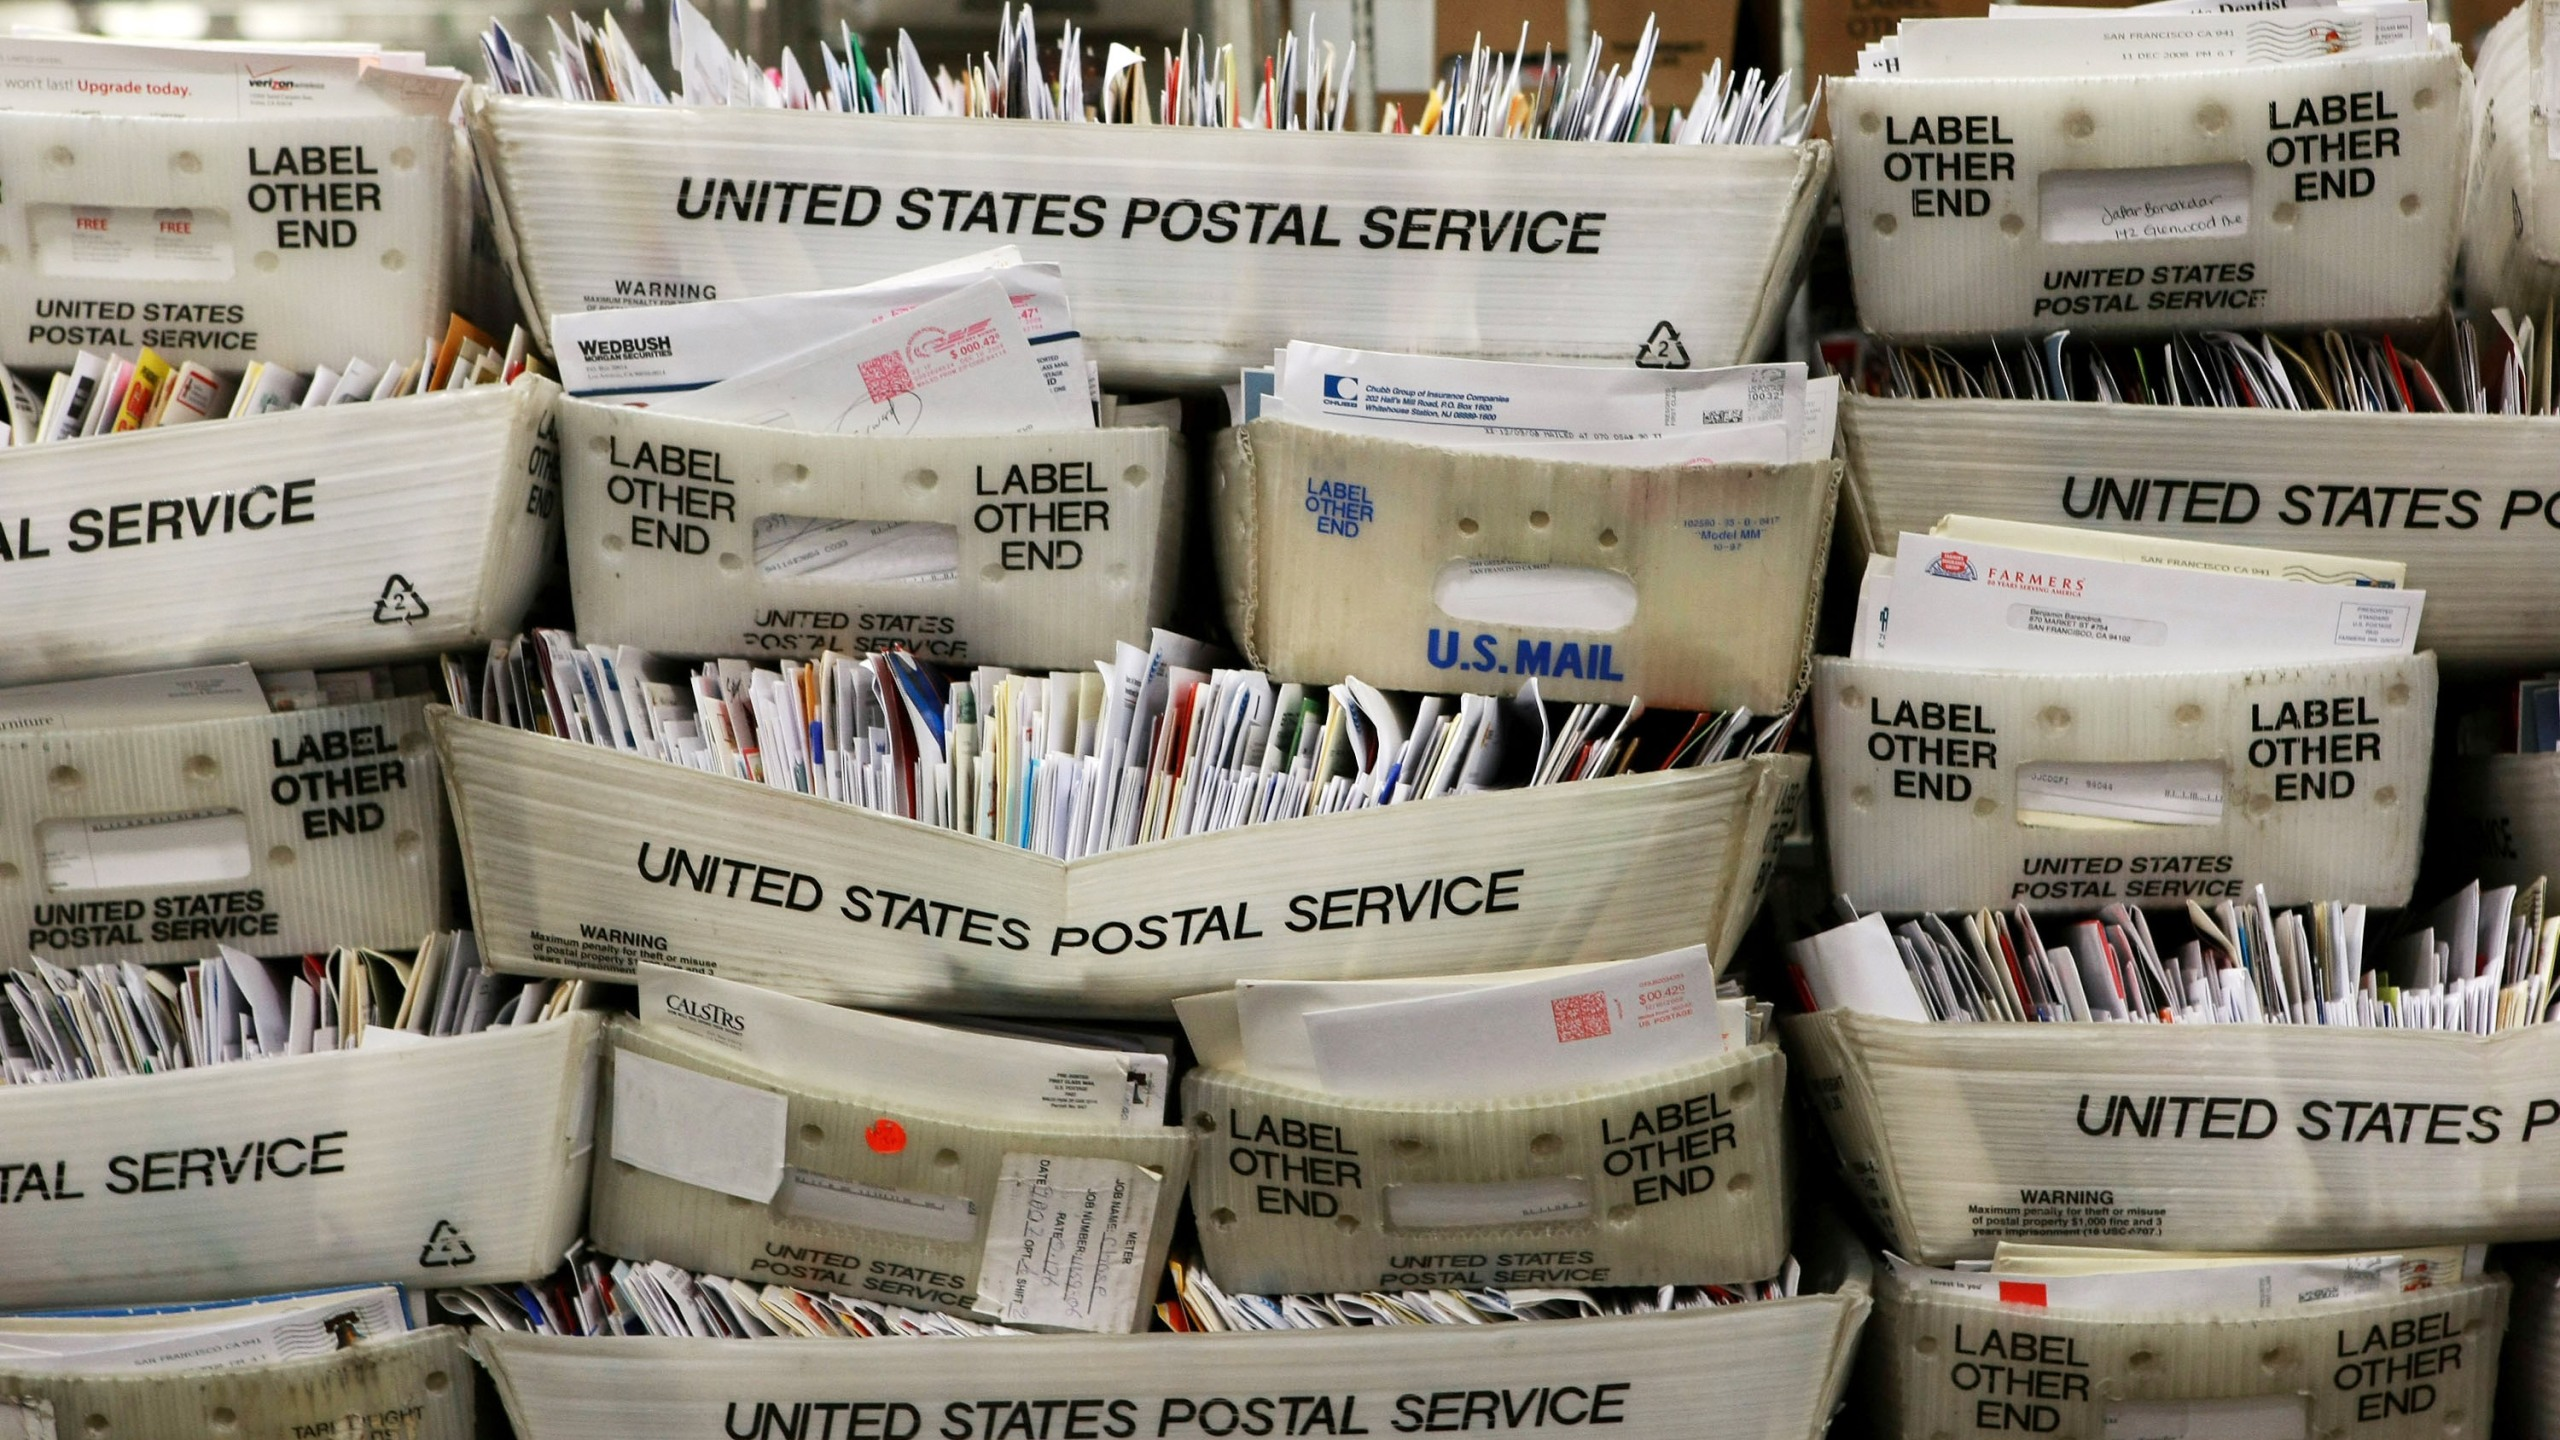 Stacks of boxes holding cards and letters are seen at the U.S. Post Office sort center December 15, 2008 in San Francisco. (Credit: Justin Sullivan/Getty Images)